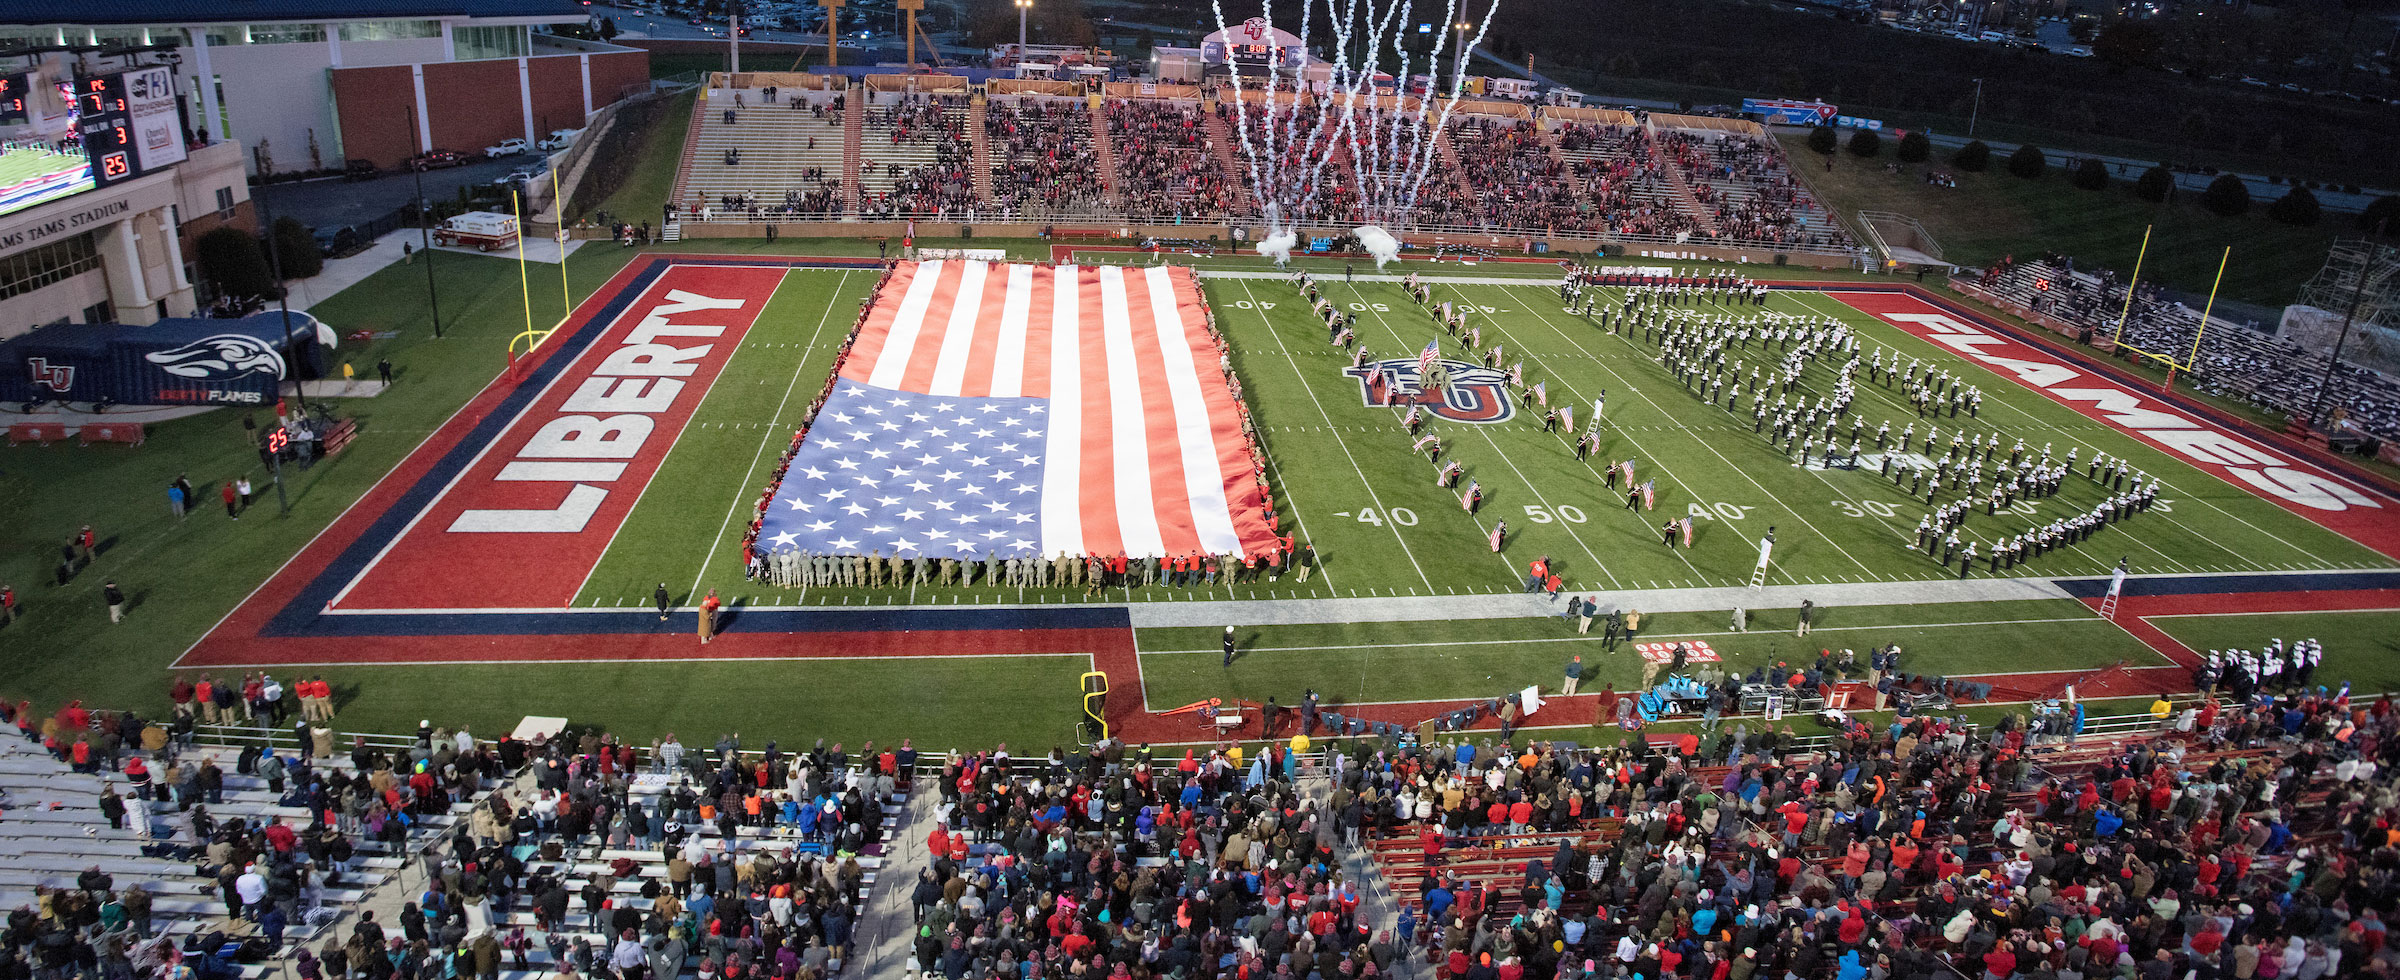 Military Halftime Show